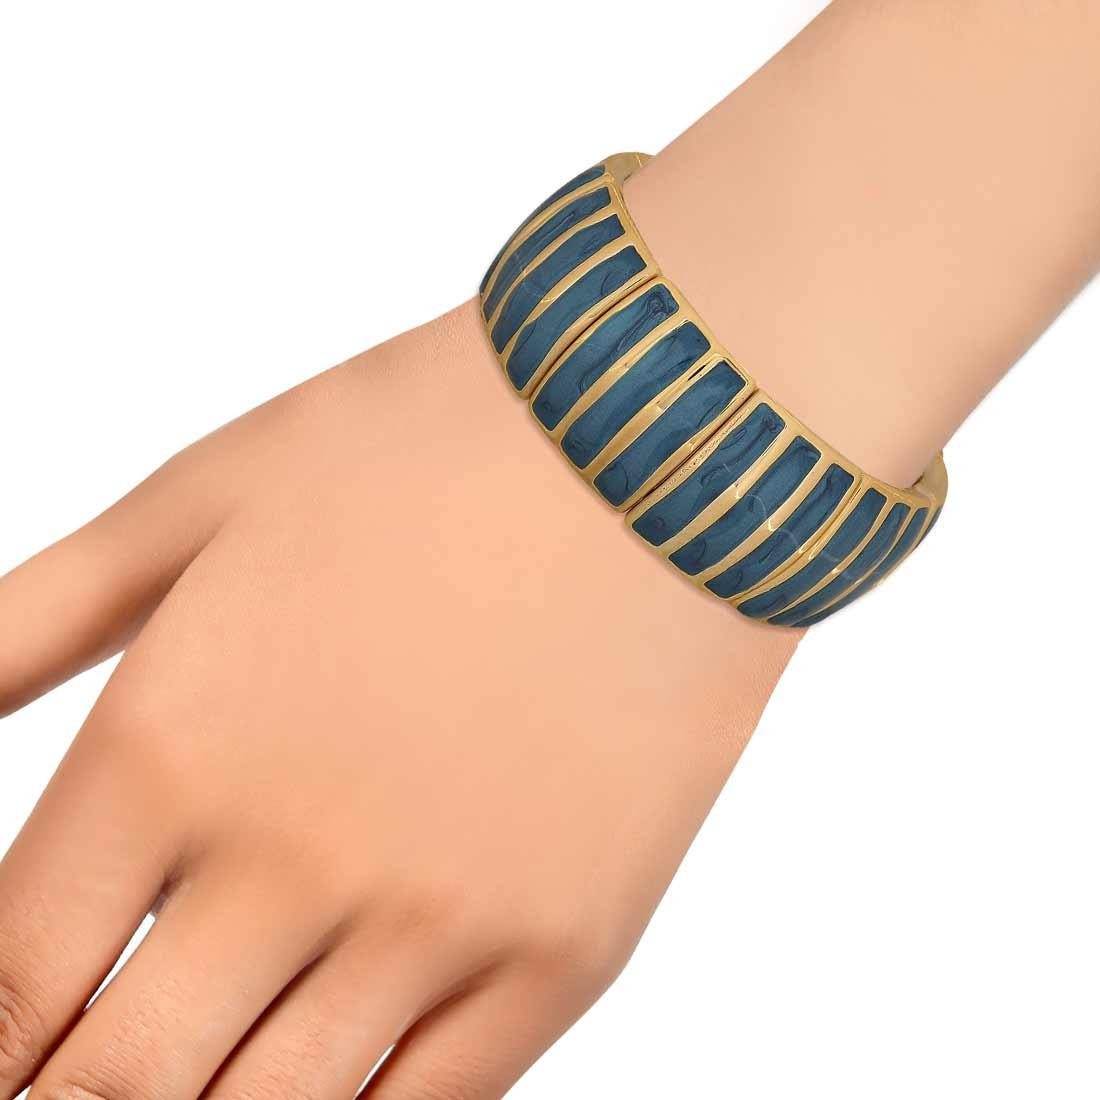 Sparkling Blue in-Trend Adjustable Get-together Bracelet Alloy Maayra MY7748